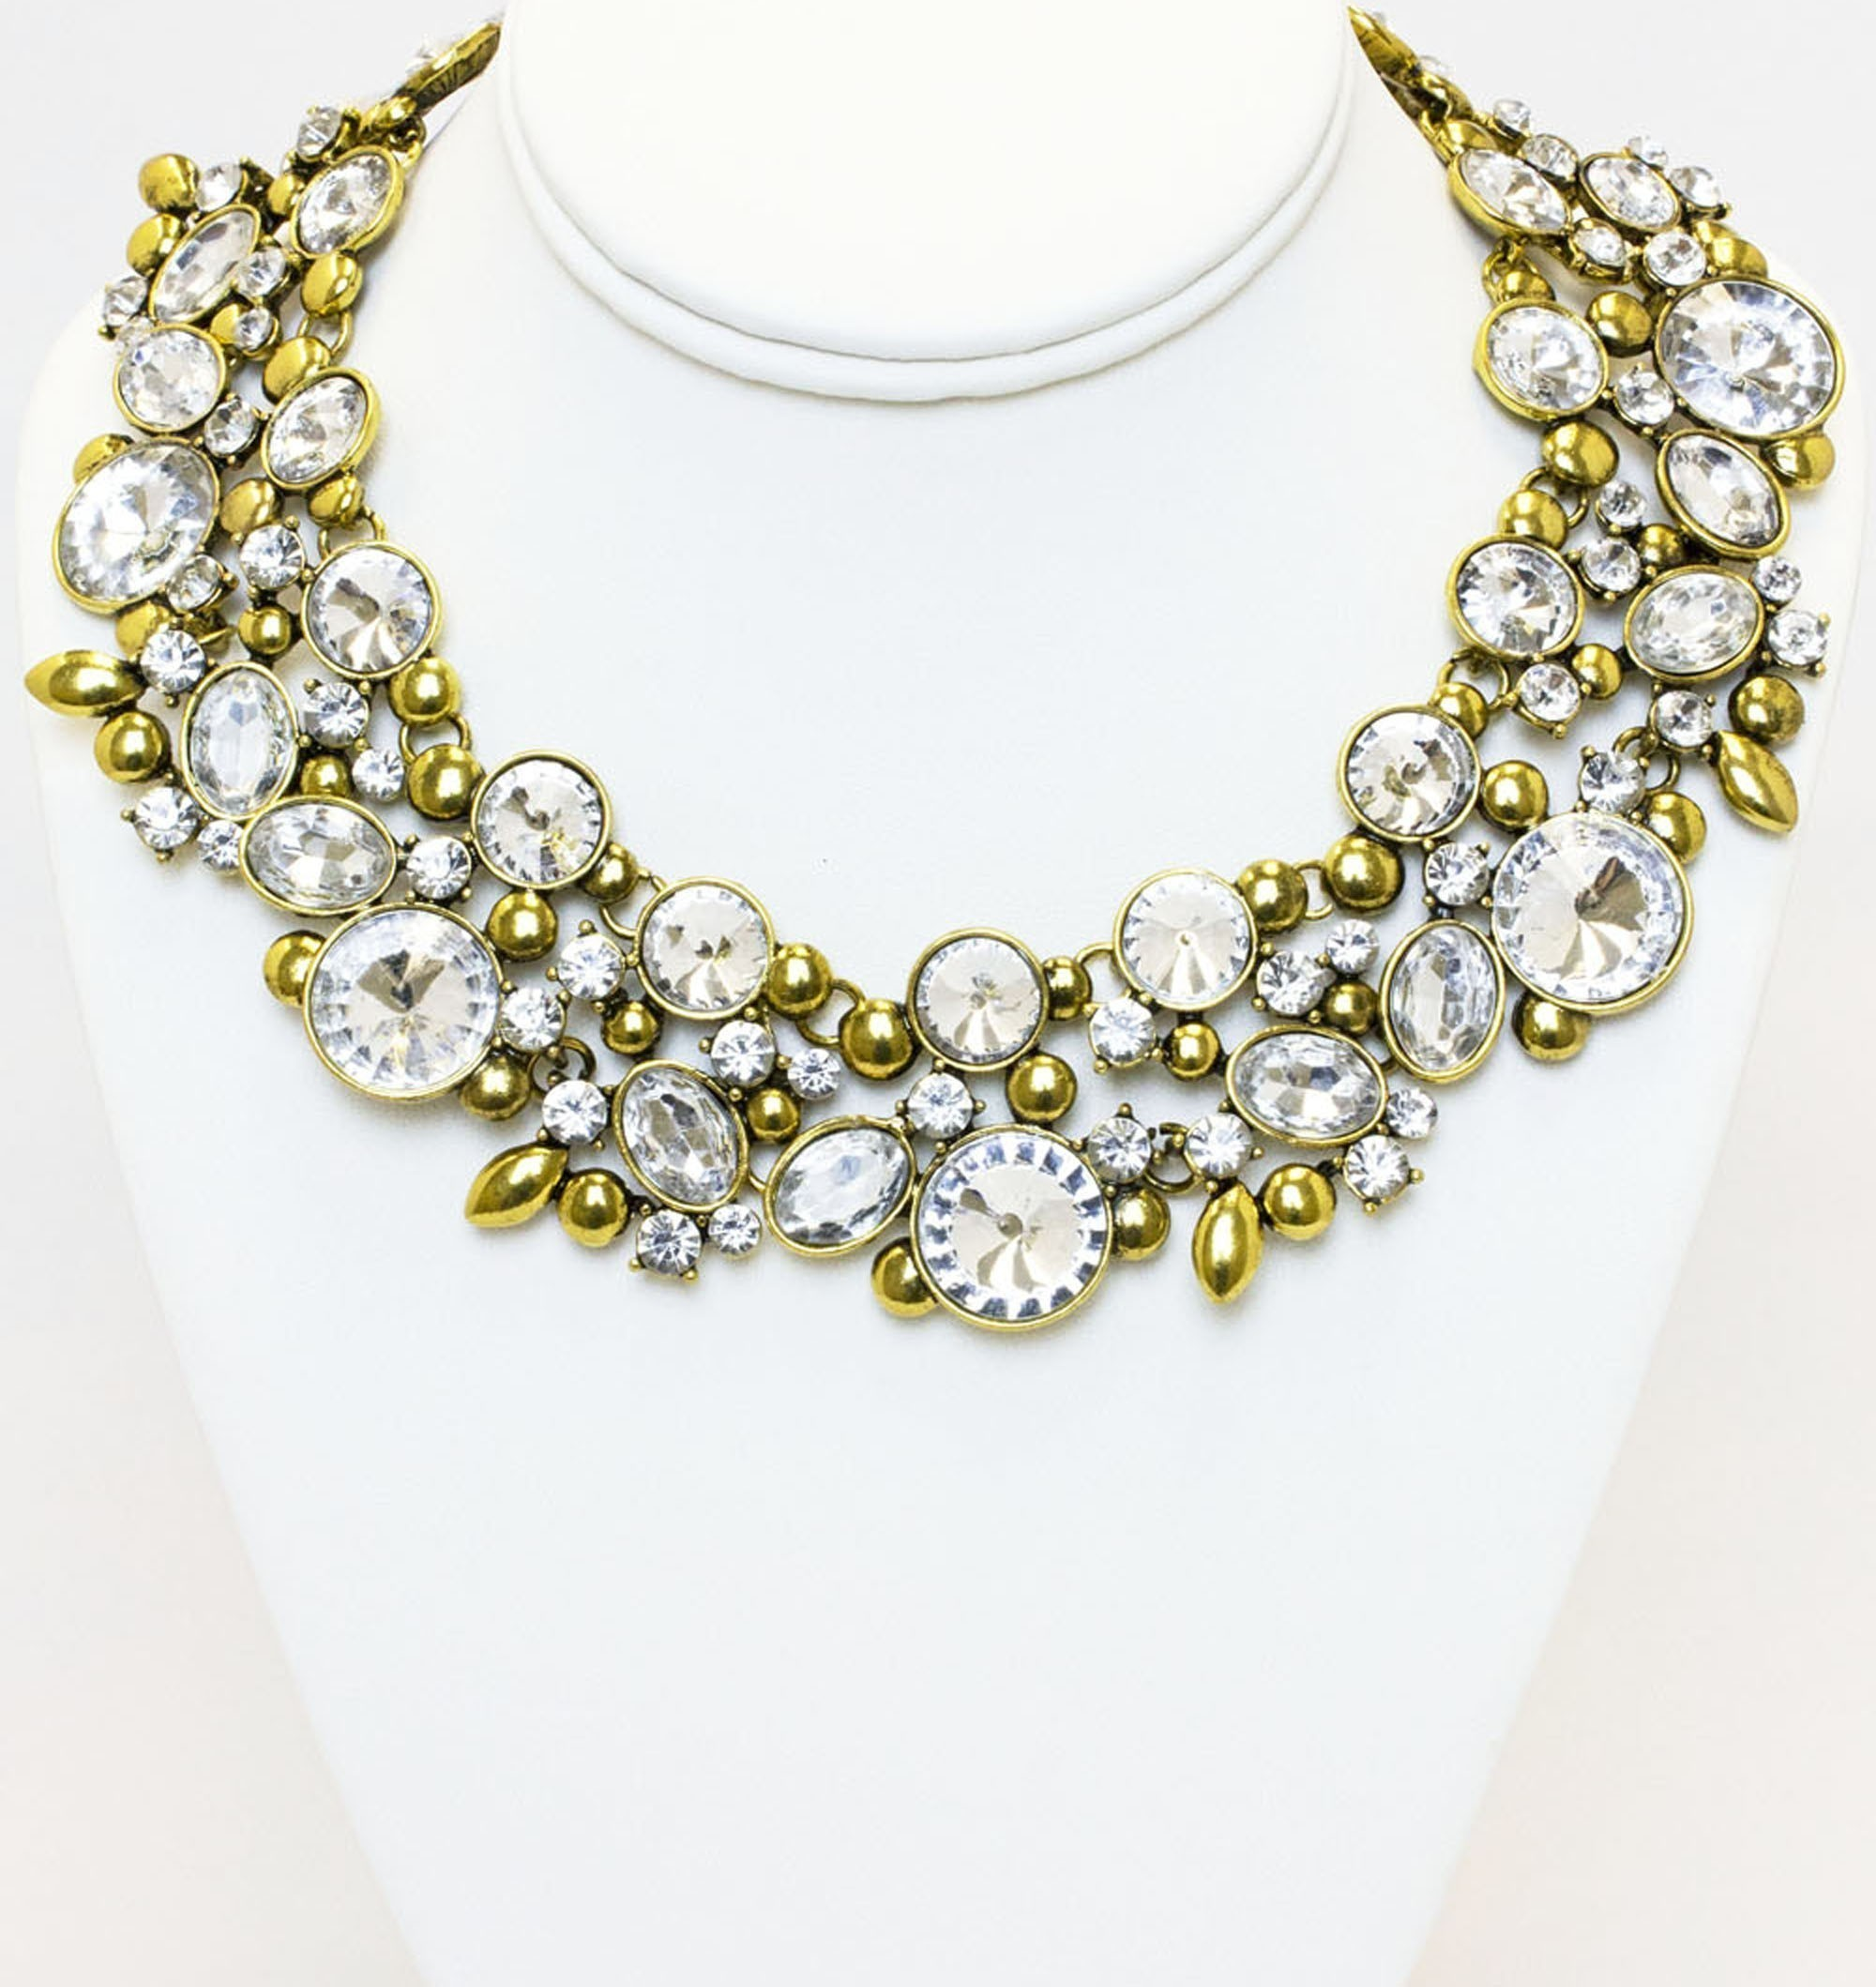 Gold Tone Plated Necklace With Clear Stones